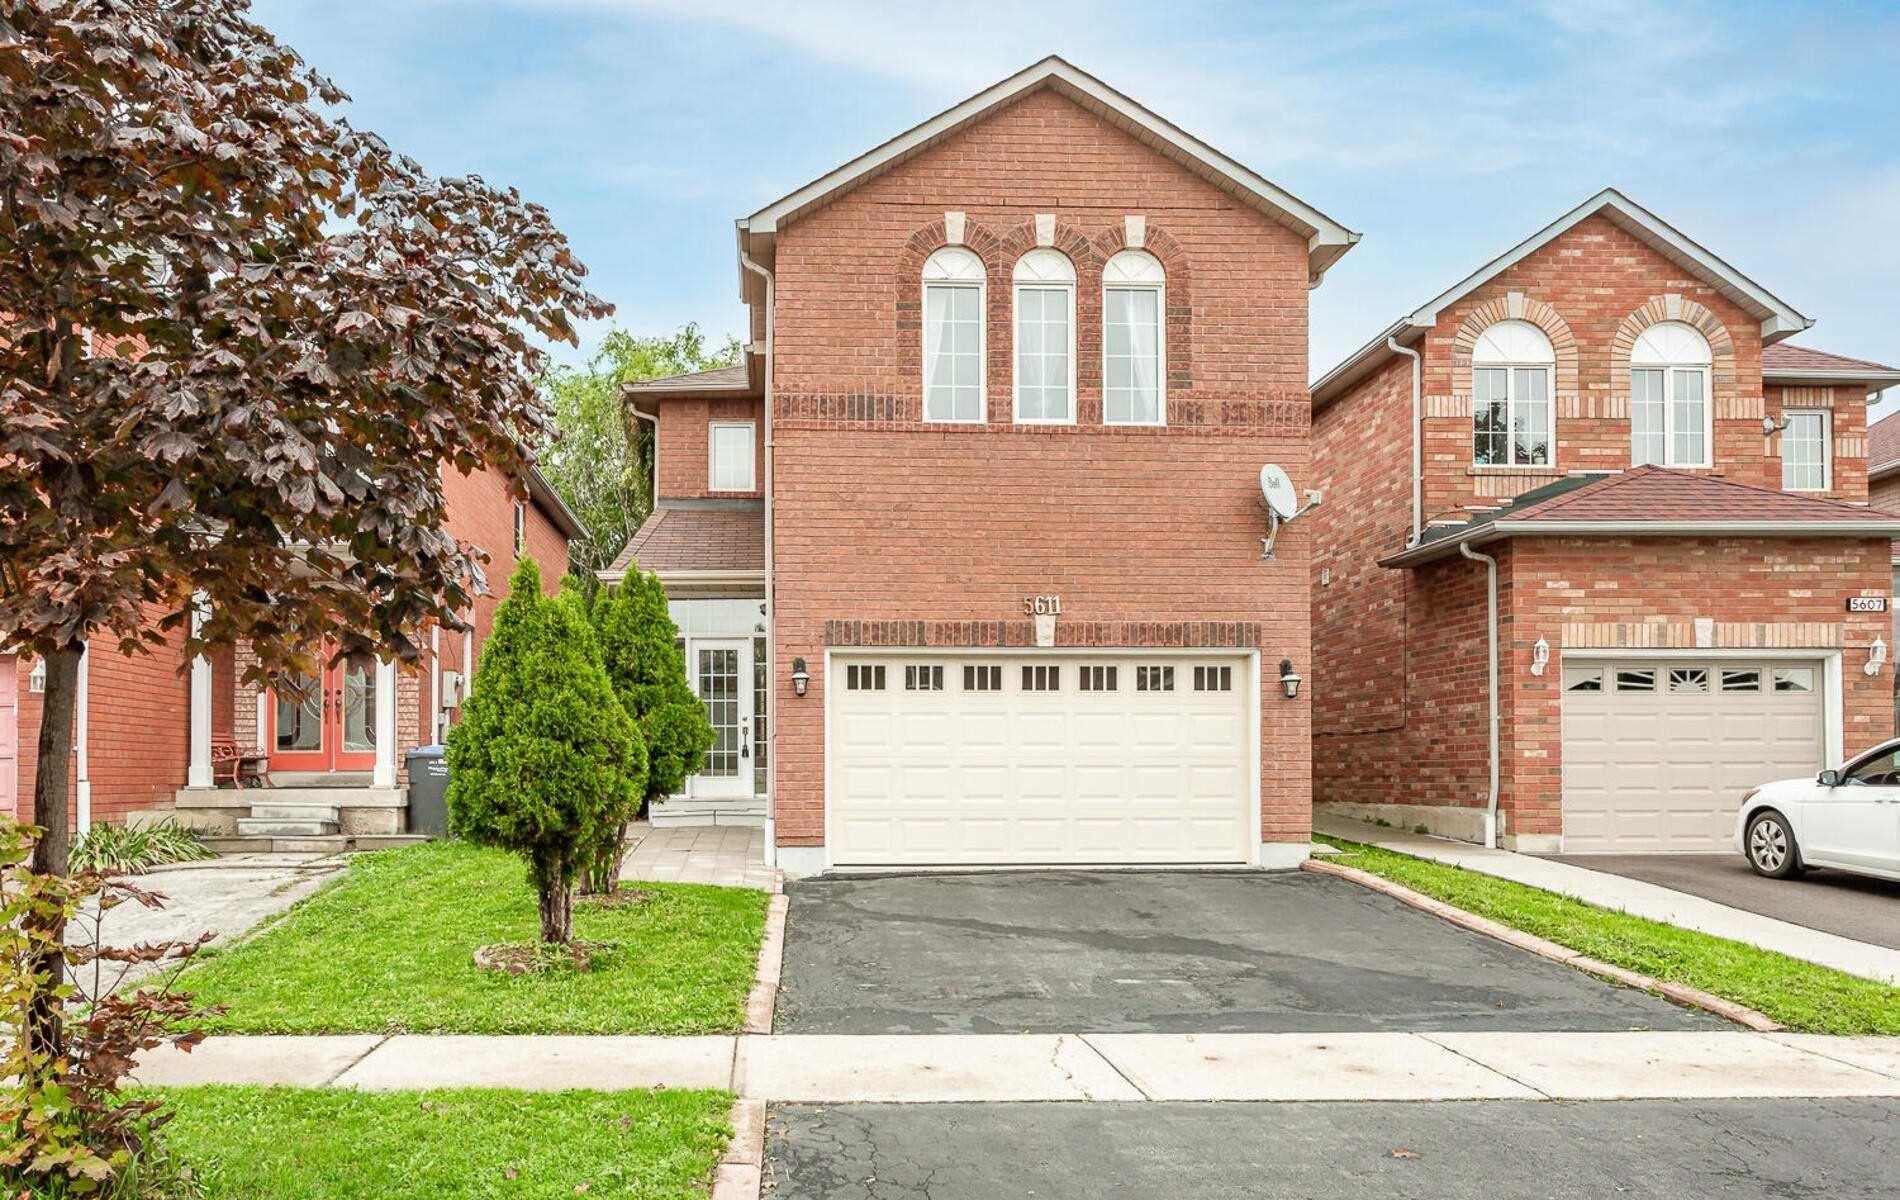 5611 Brenchley Ave, Mississauga, ON L5V2H3 - MLS#: W5399385